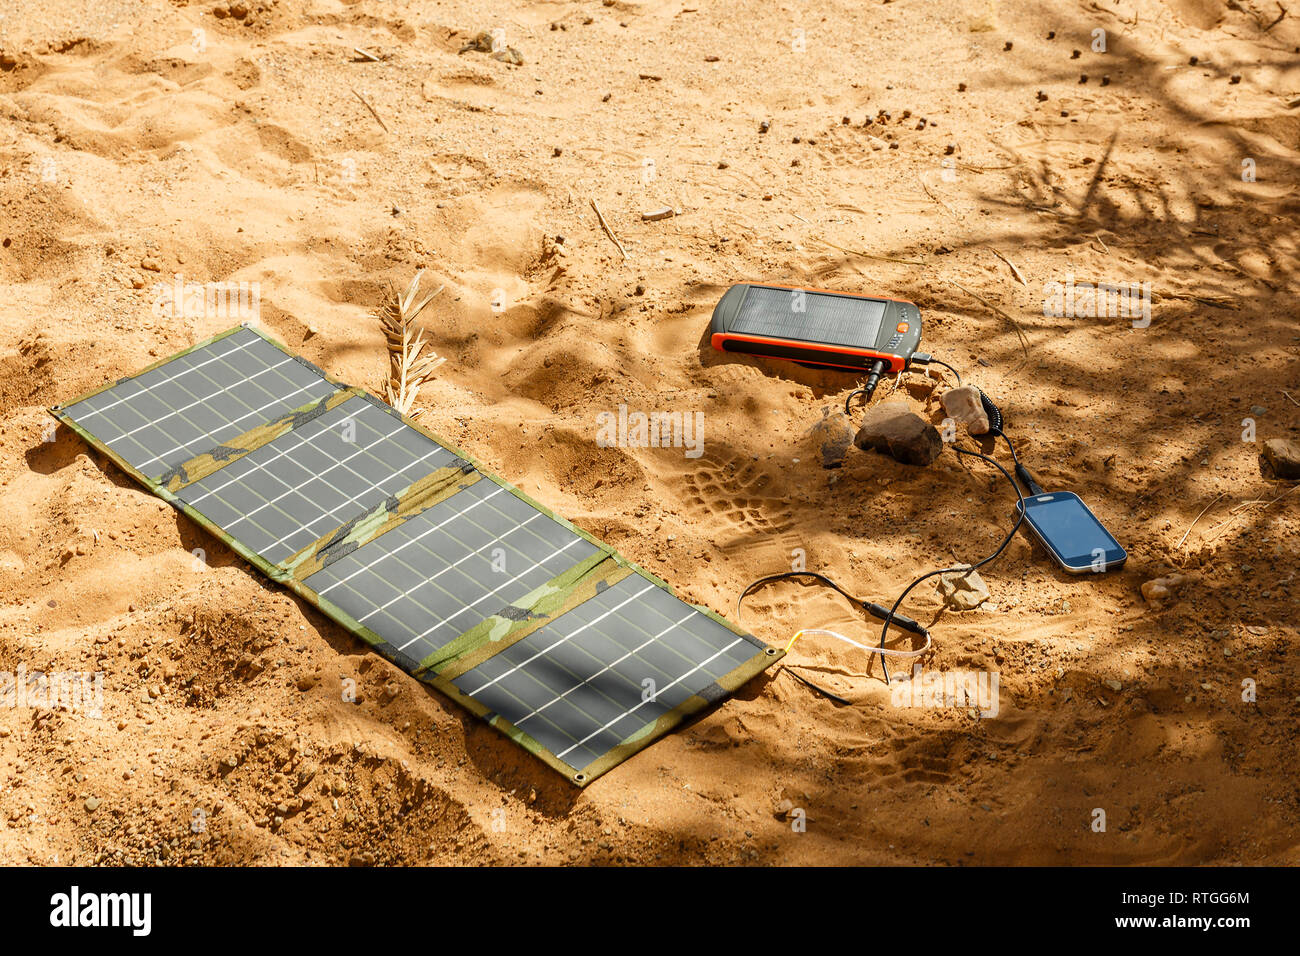 solar panel lying on the ground and charges the smart phone, the Sahara desert. Charge smart phone from the solar battery. - Stock Image